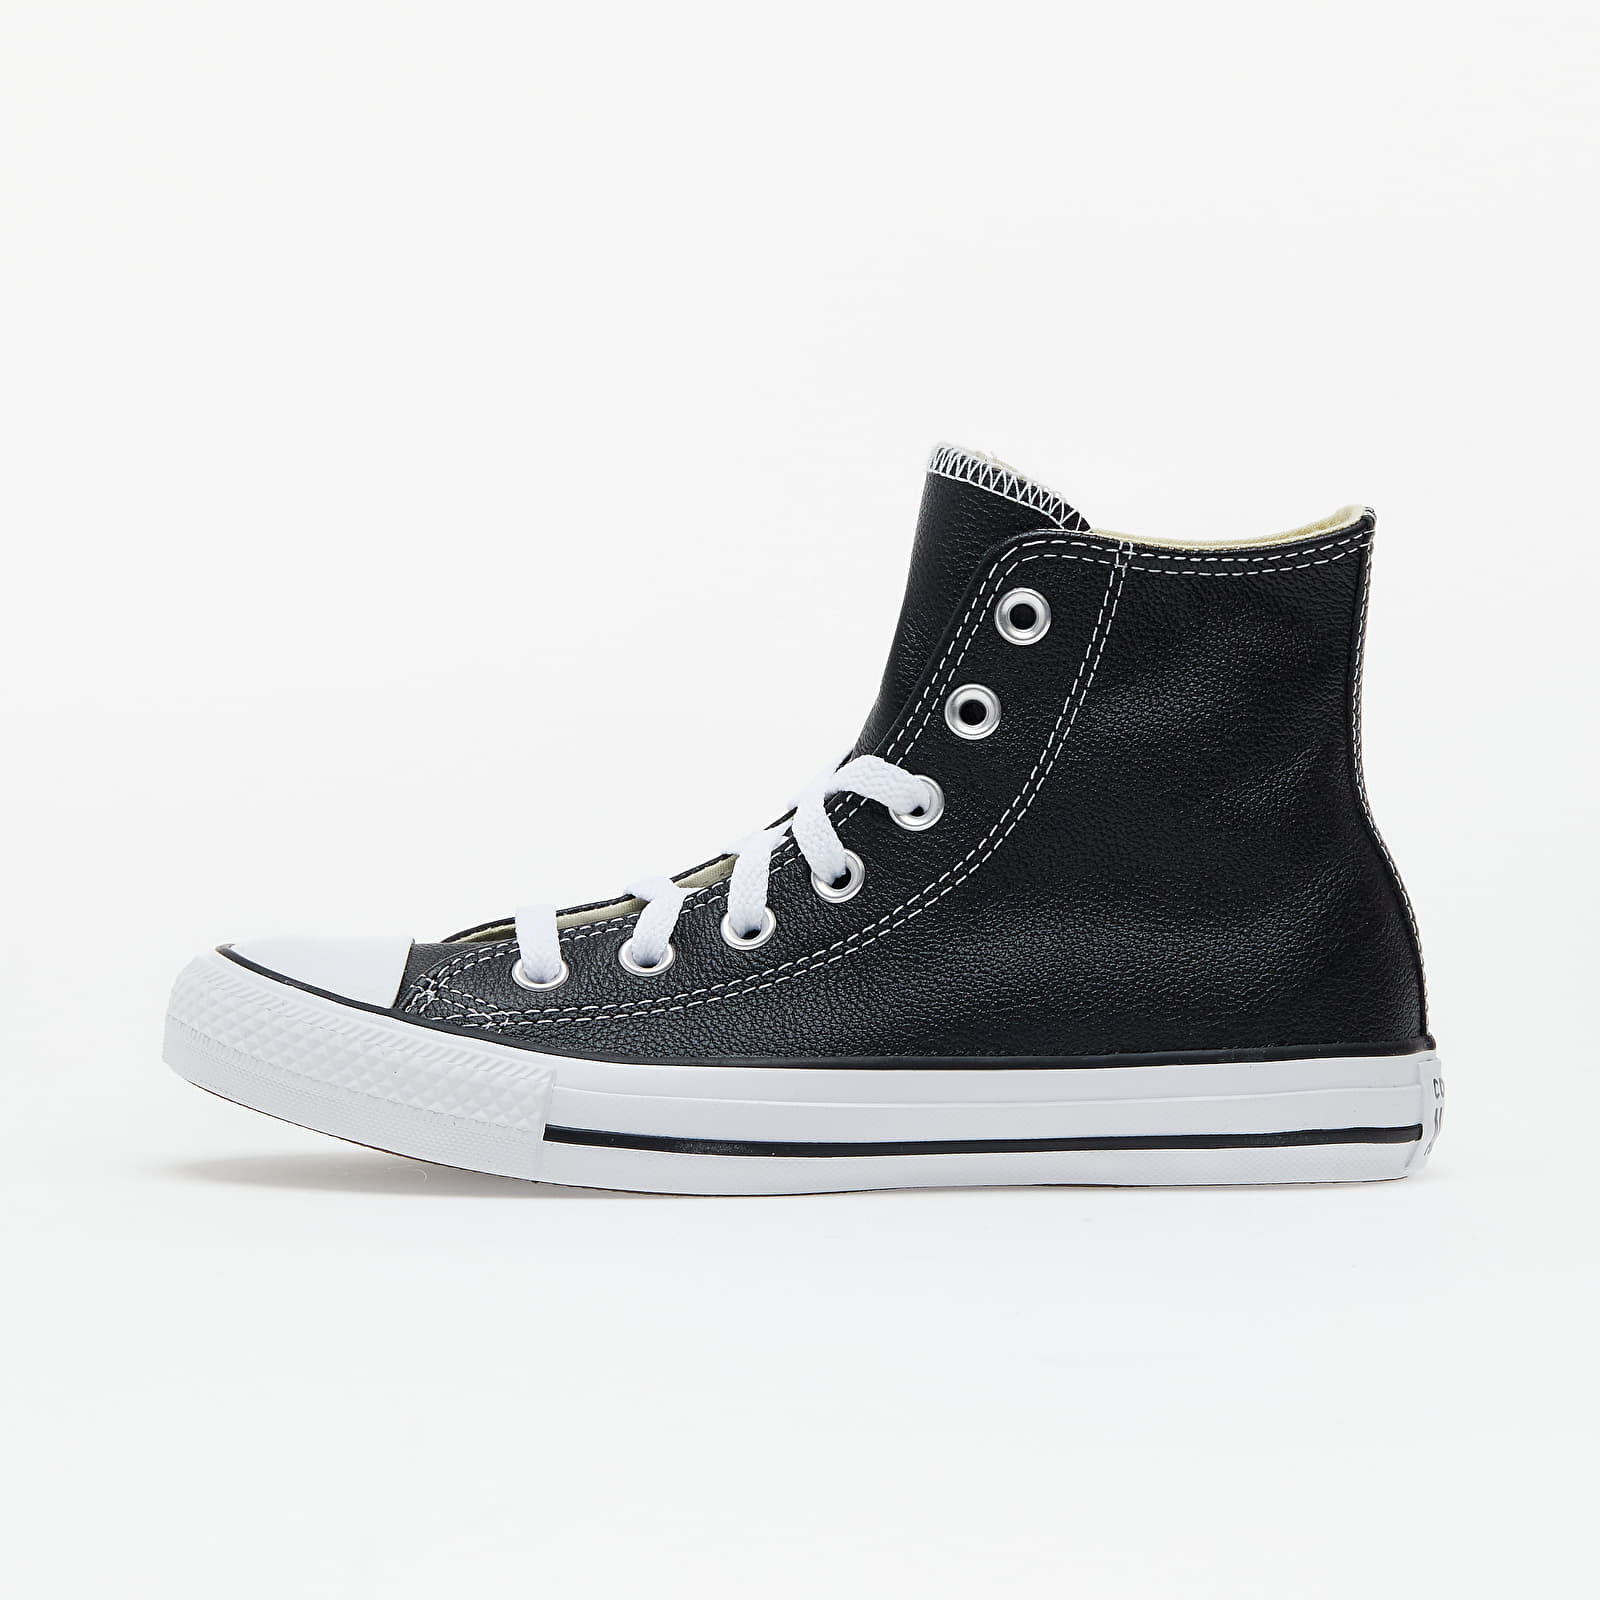 Ανδρικά παπούτσια Converse Chuck Taylor All Star Hi Black